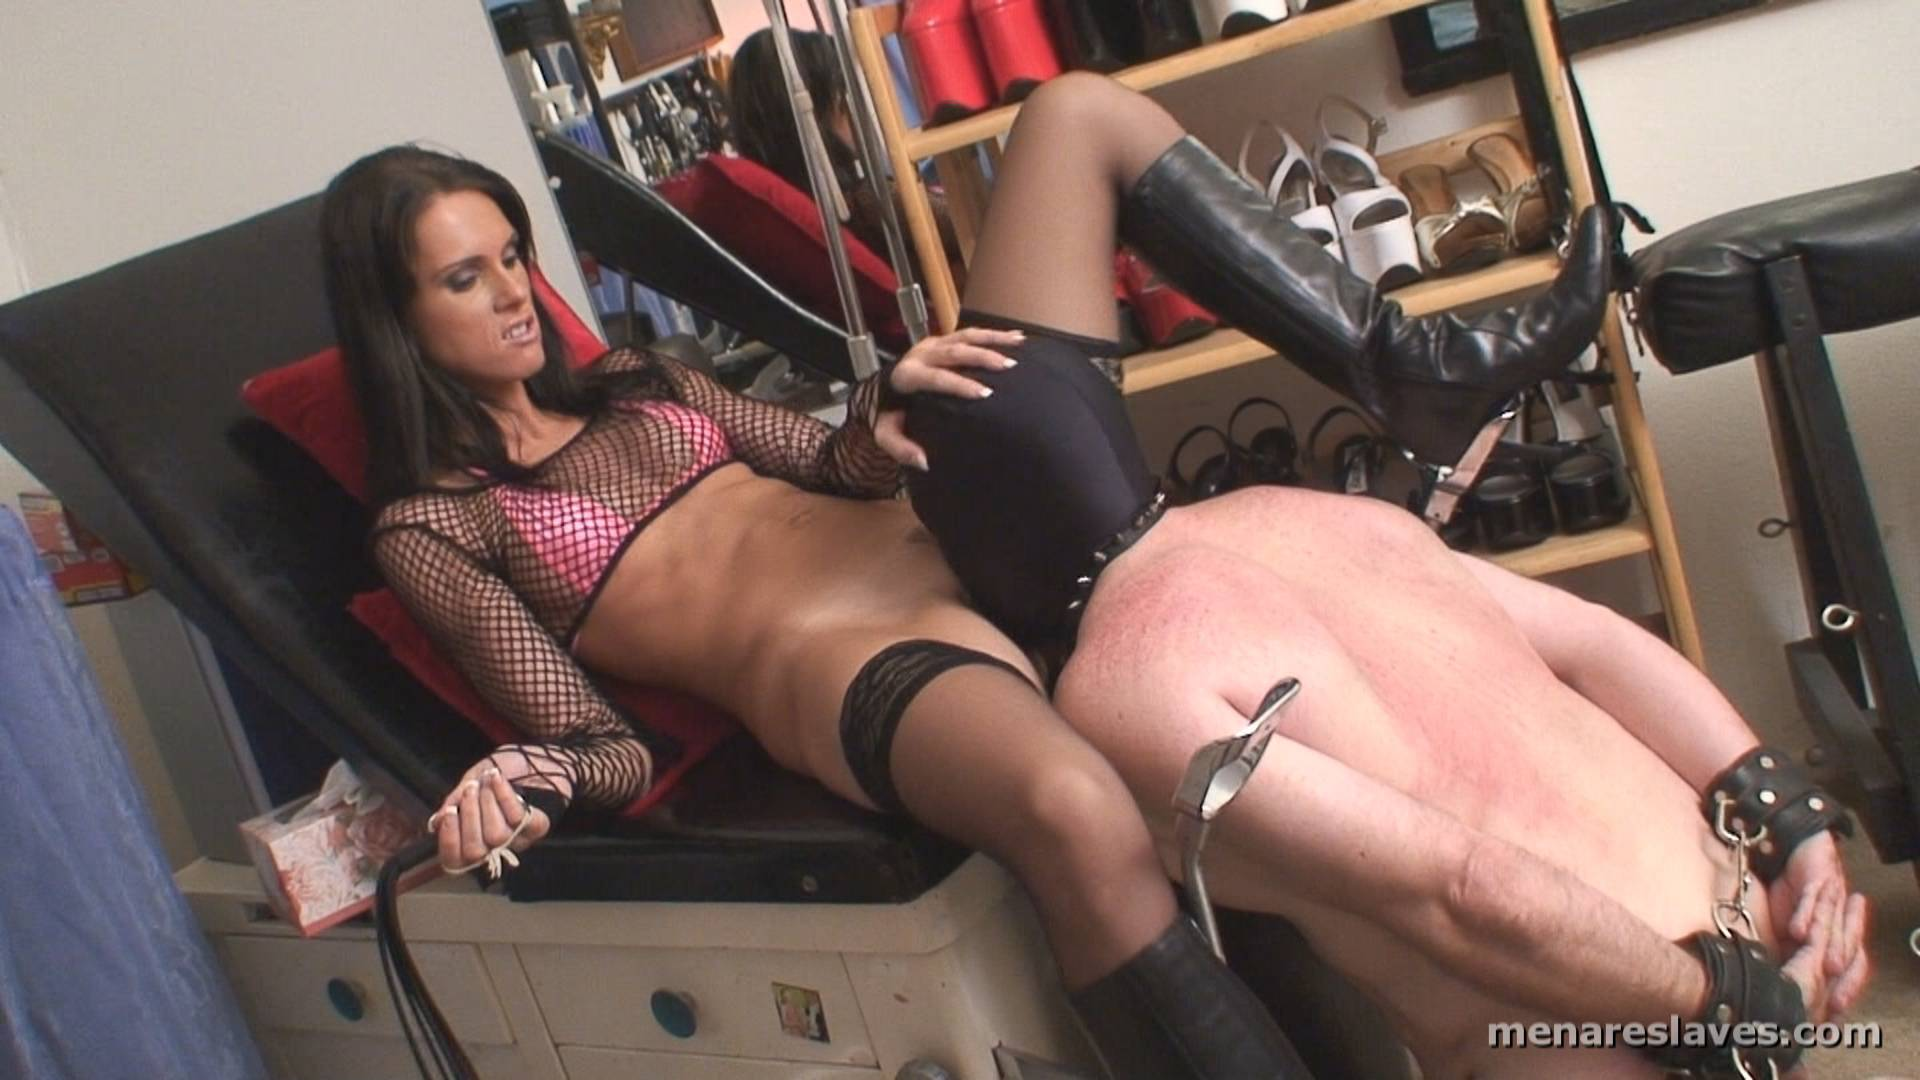 Slave Licks Feet, Ass And Sweet Lips Of The Mistress Pussy